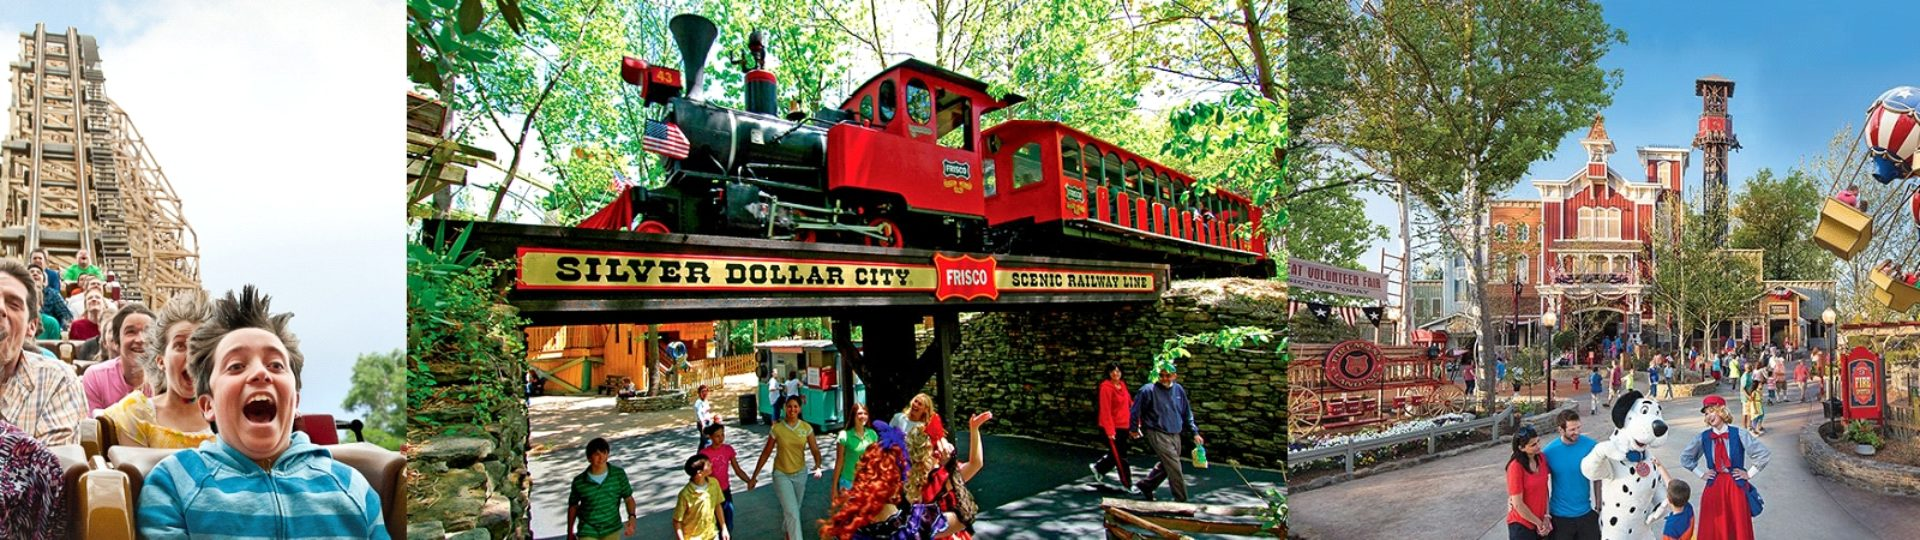 Silver Dollar City Christmas 2021 Packages